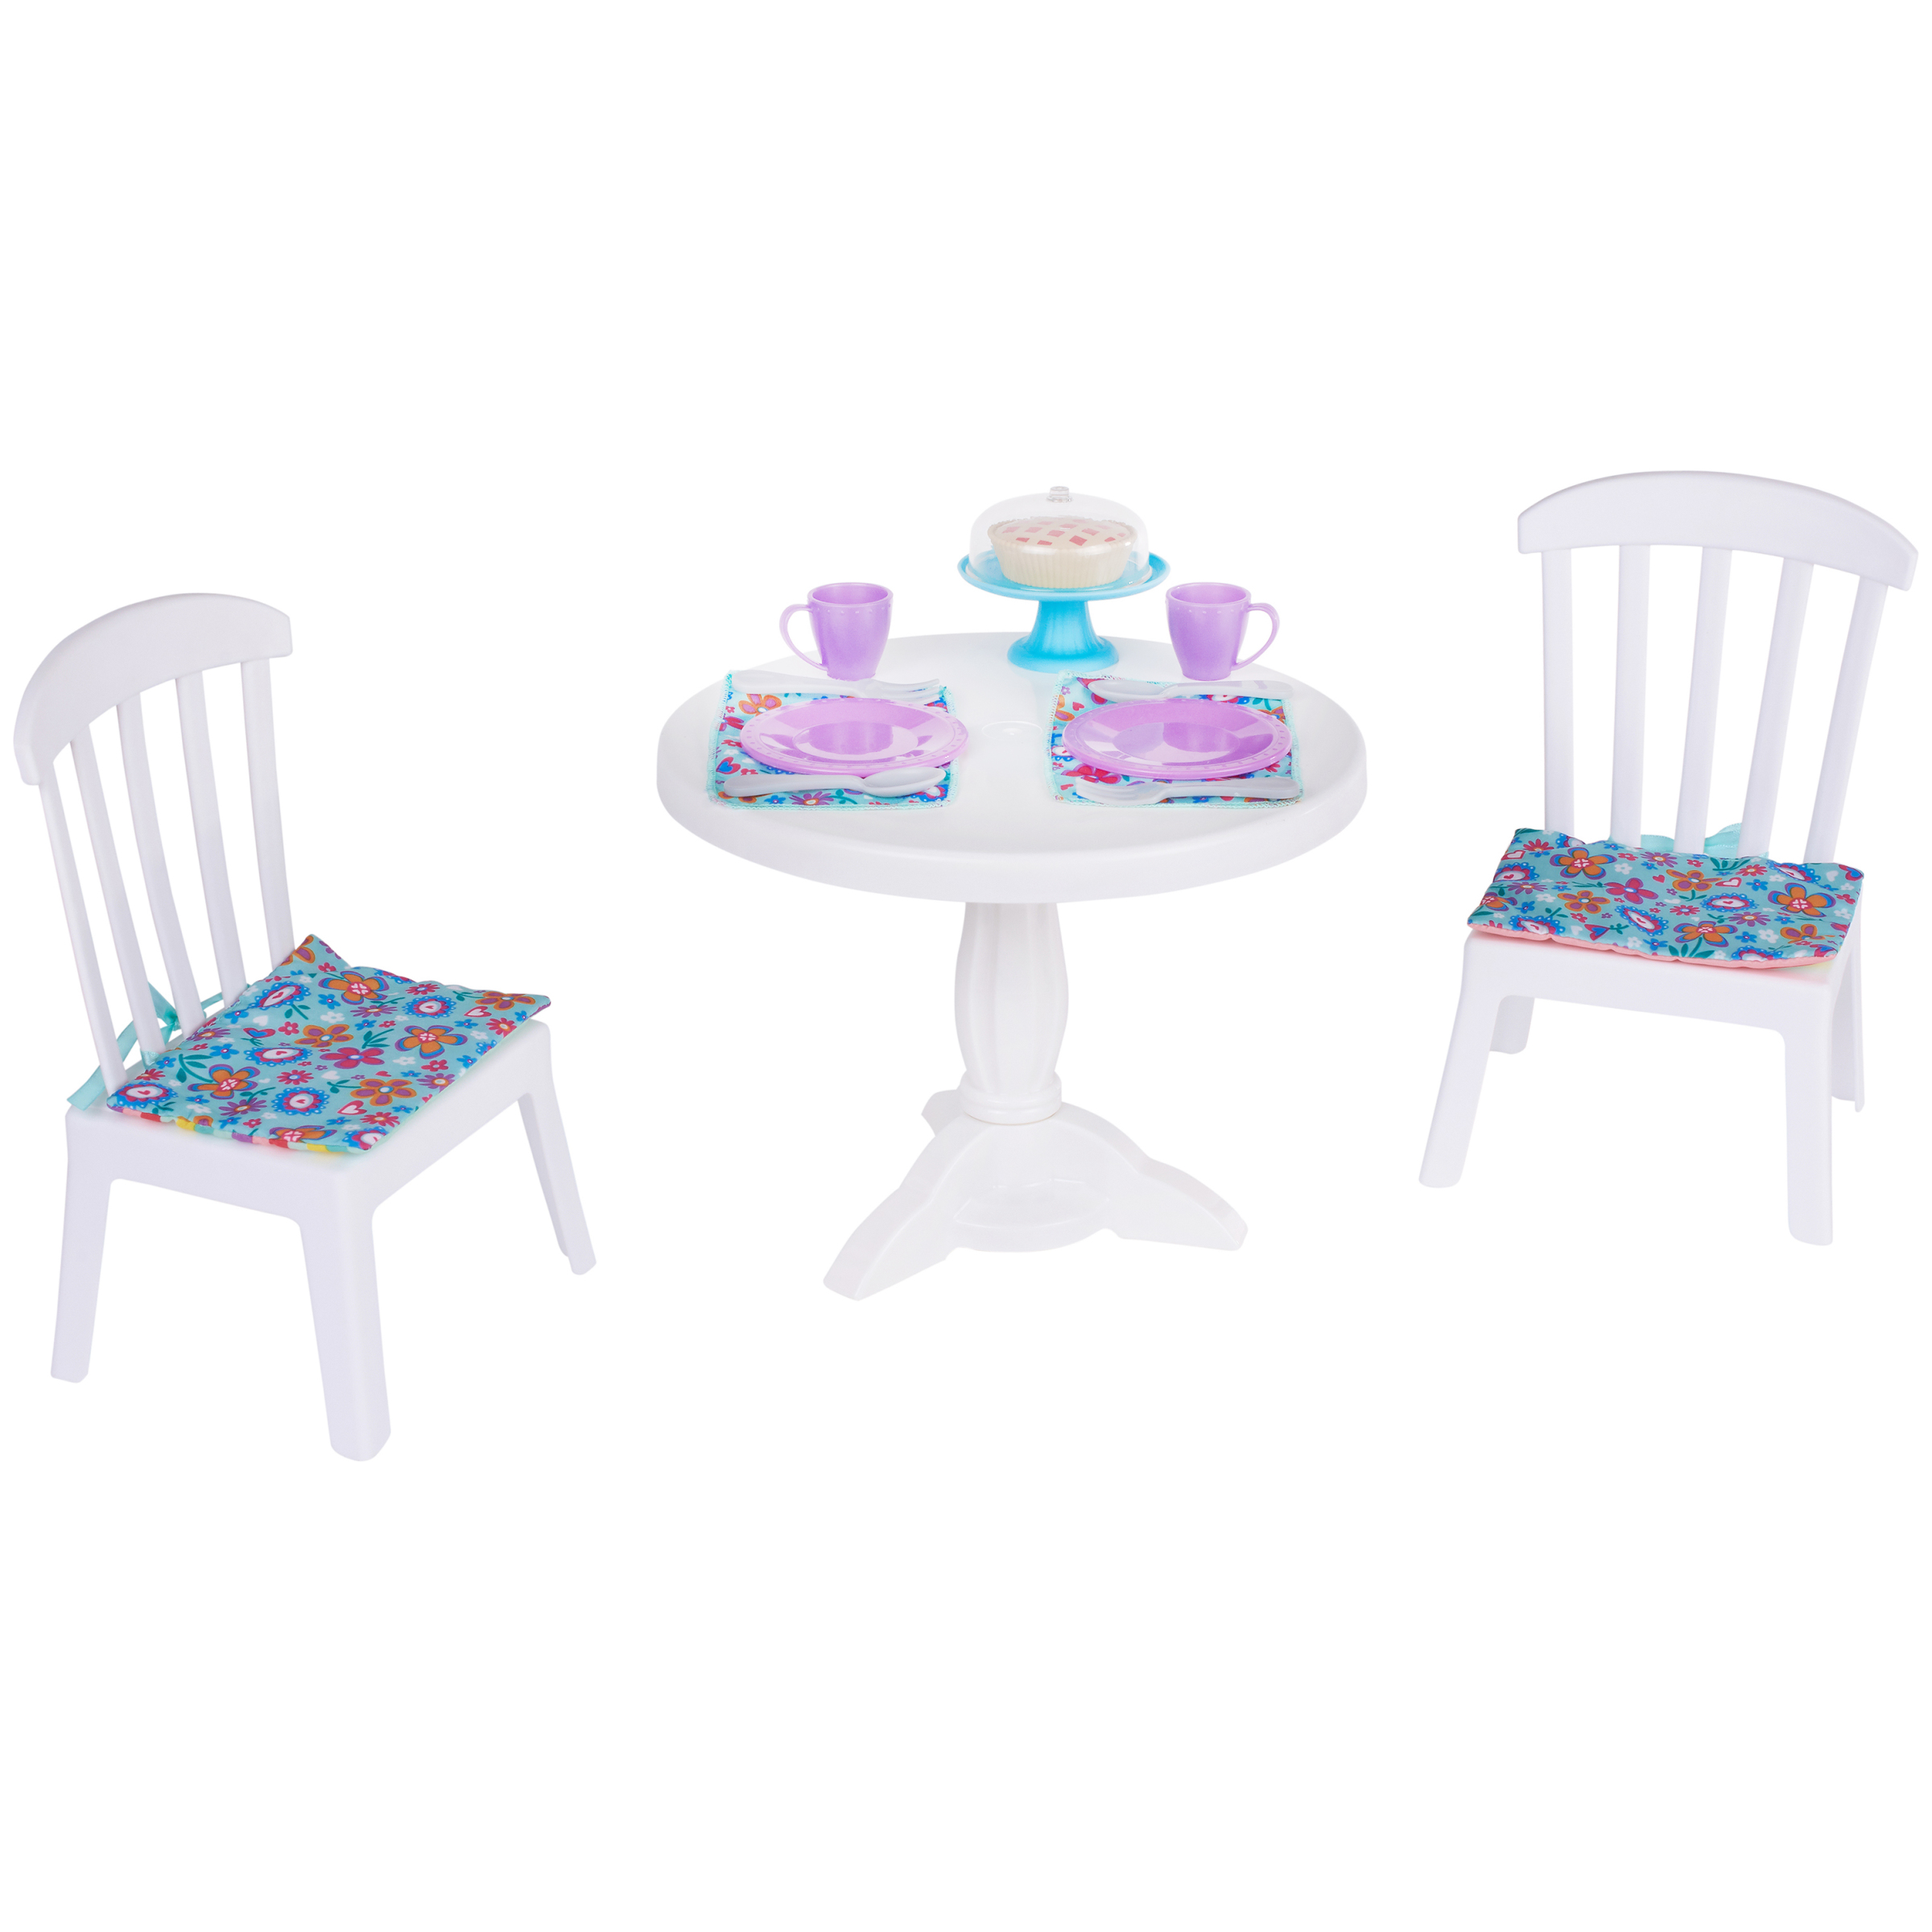 Dining Room Play: My Life As 15-Piece Dining Room Play Set, For Play With